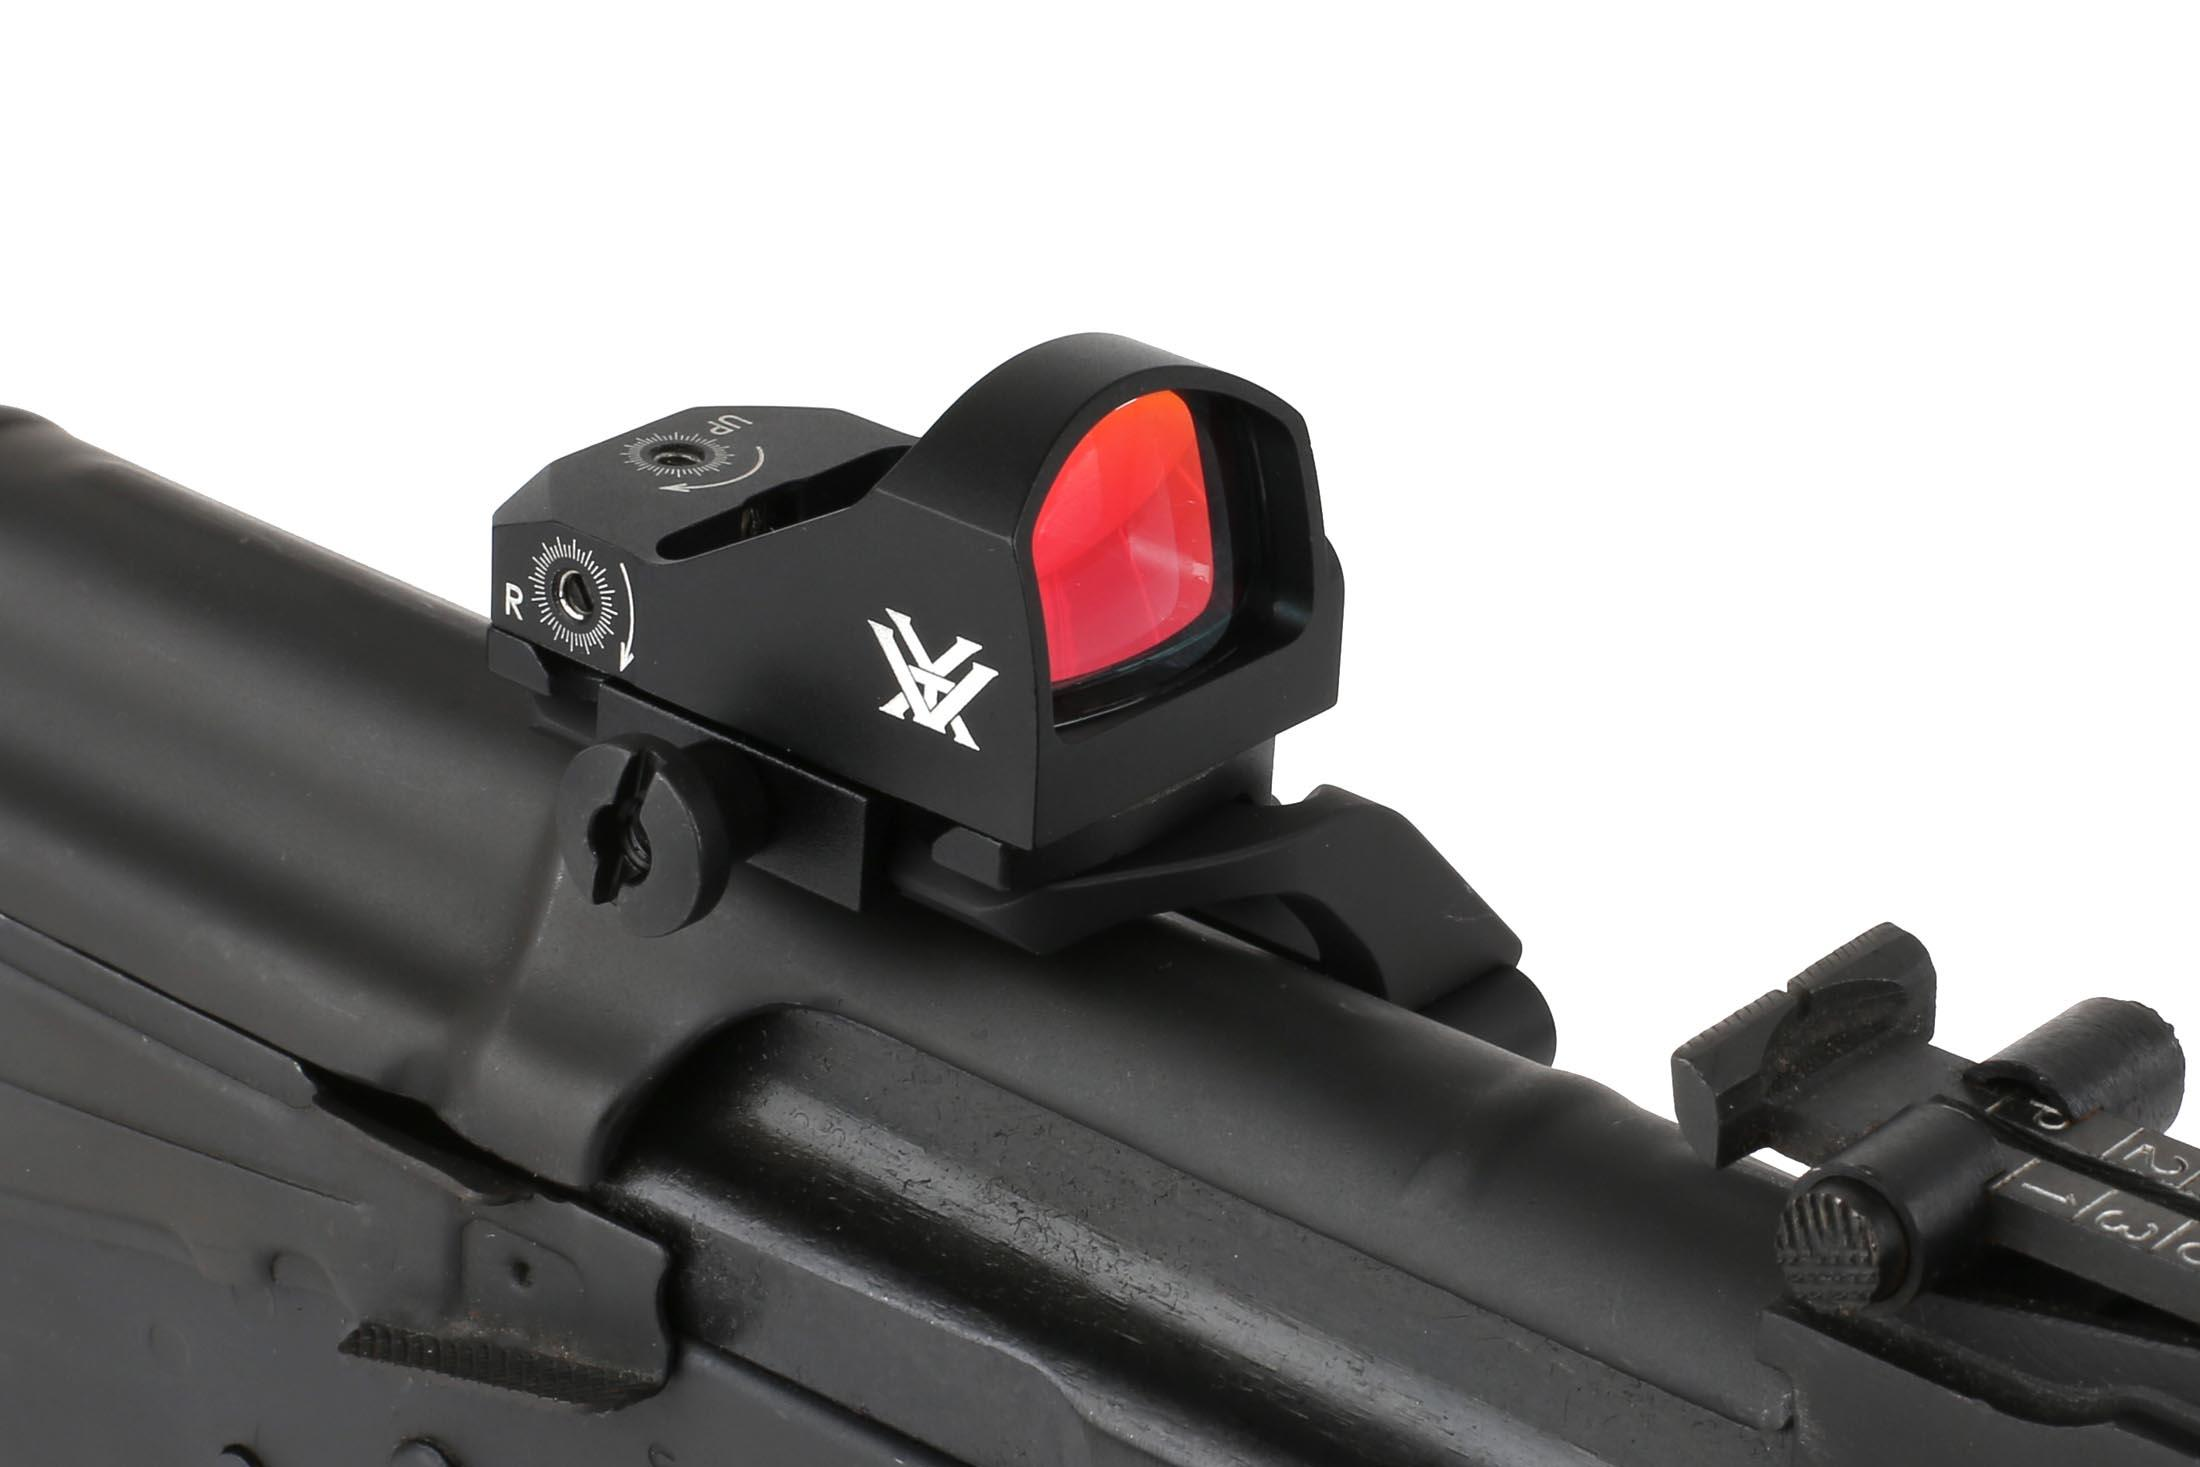 The Vortex Optics red dot reflex sight can be mounted to an AK-47